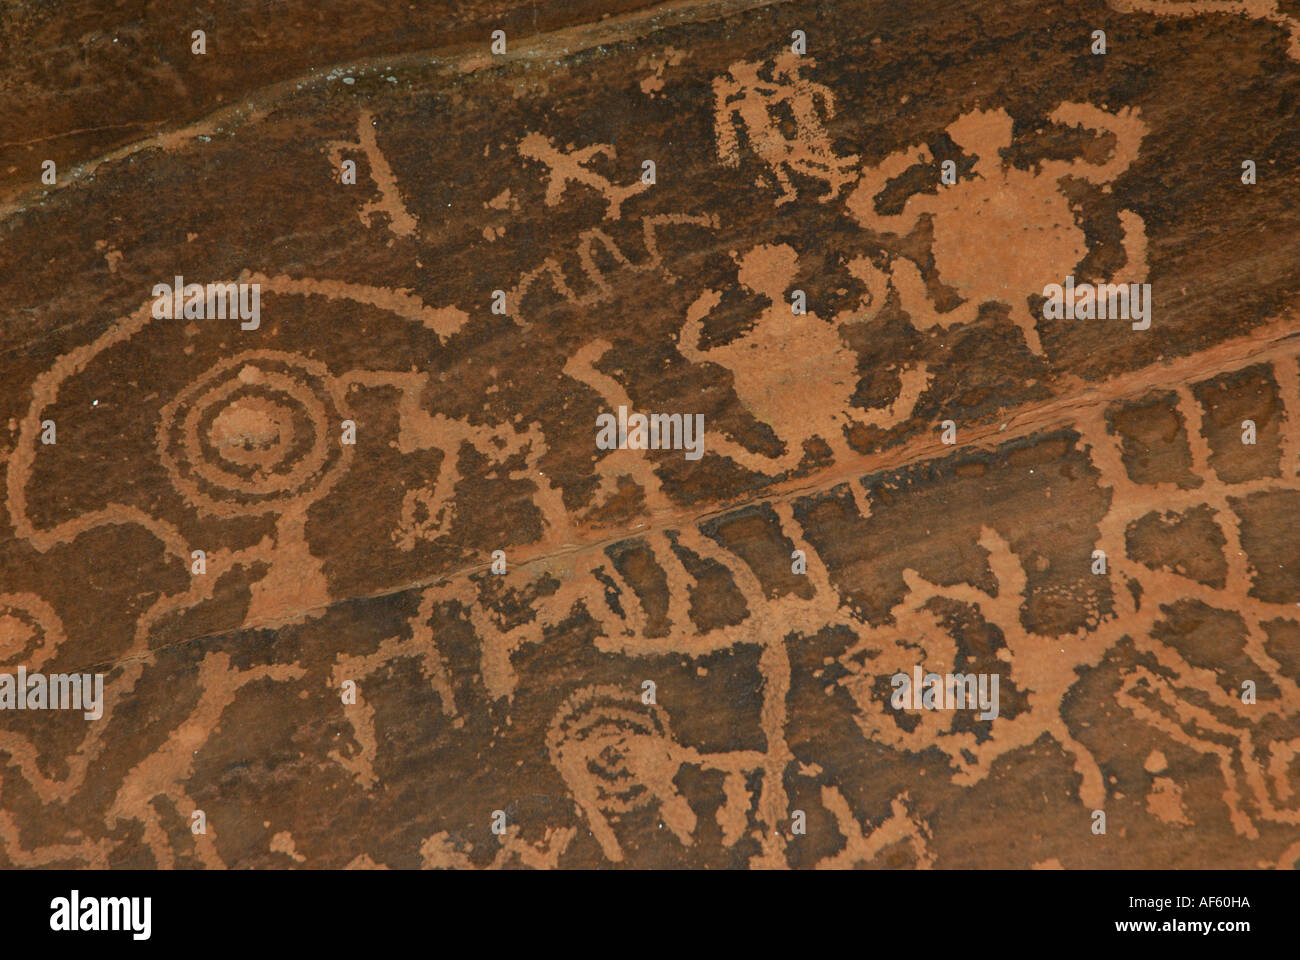 Native American Petroglyphs Of People Turtle Pairs And Spiritual